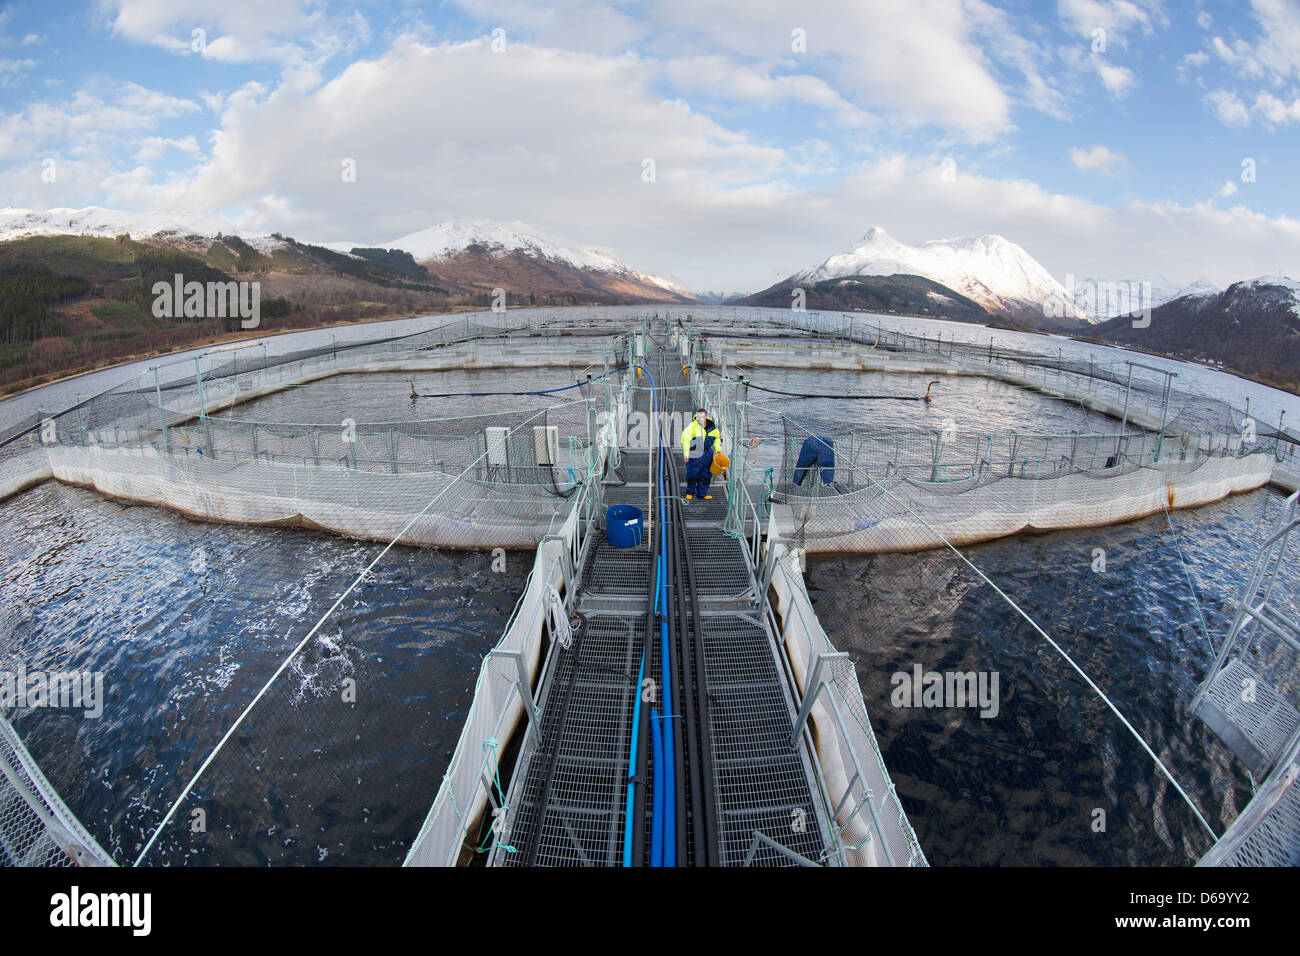 Workers at salmon farm in rural lake - Stock Image